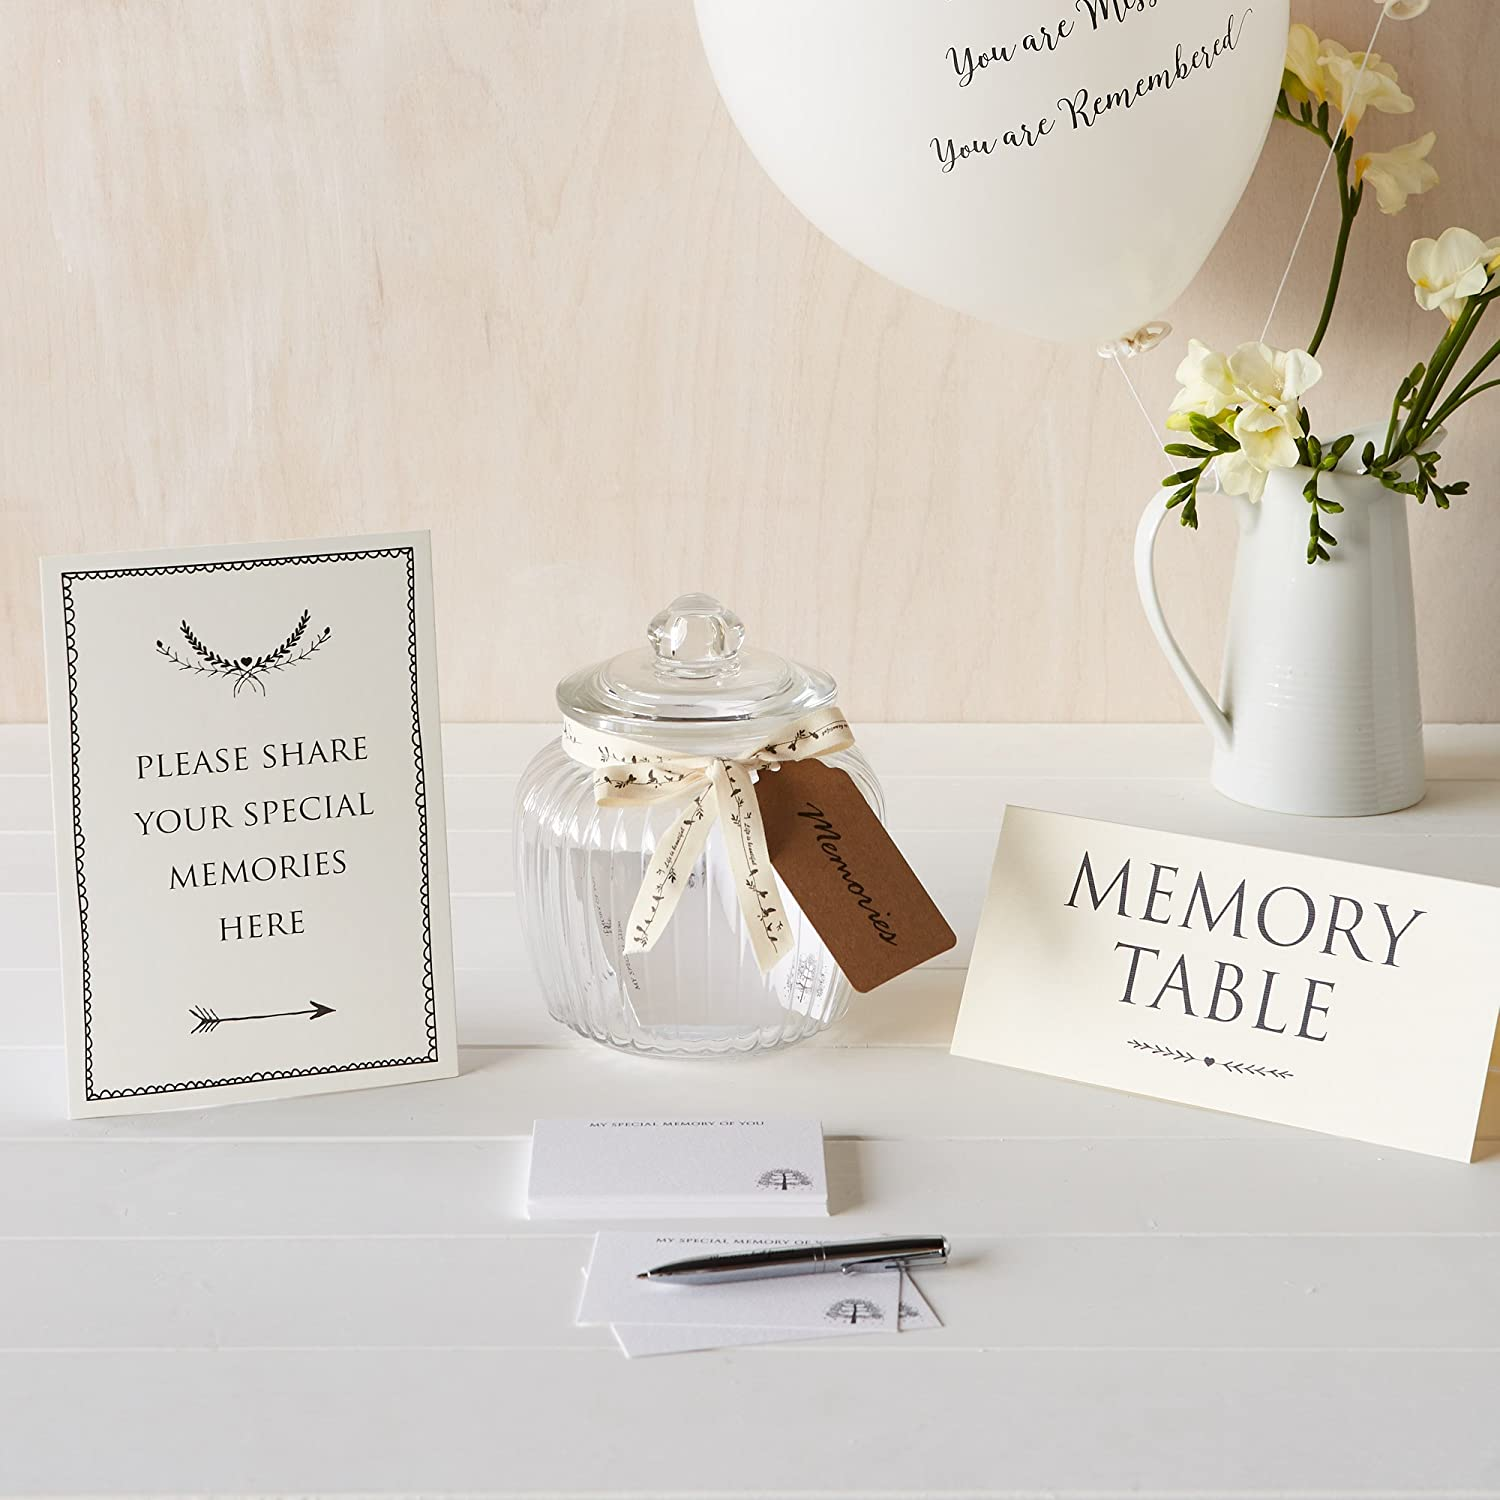 Angel Dove Funeral Memory Jar Collection Contents Amazon Co Uk Electronics